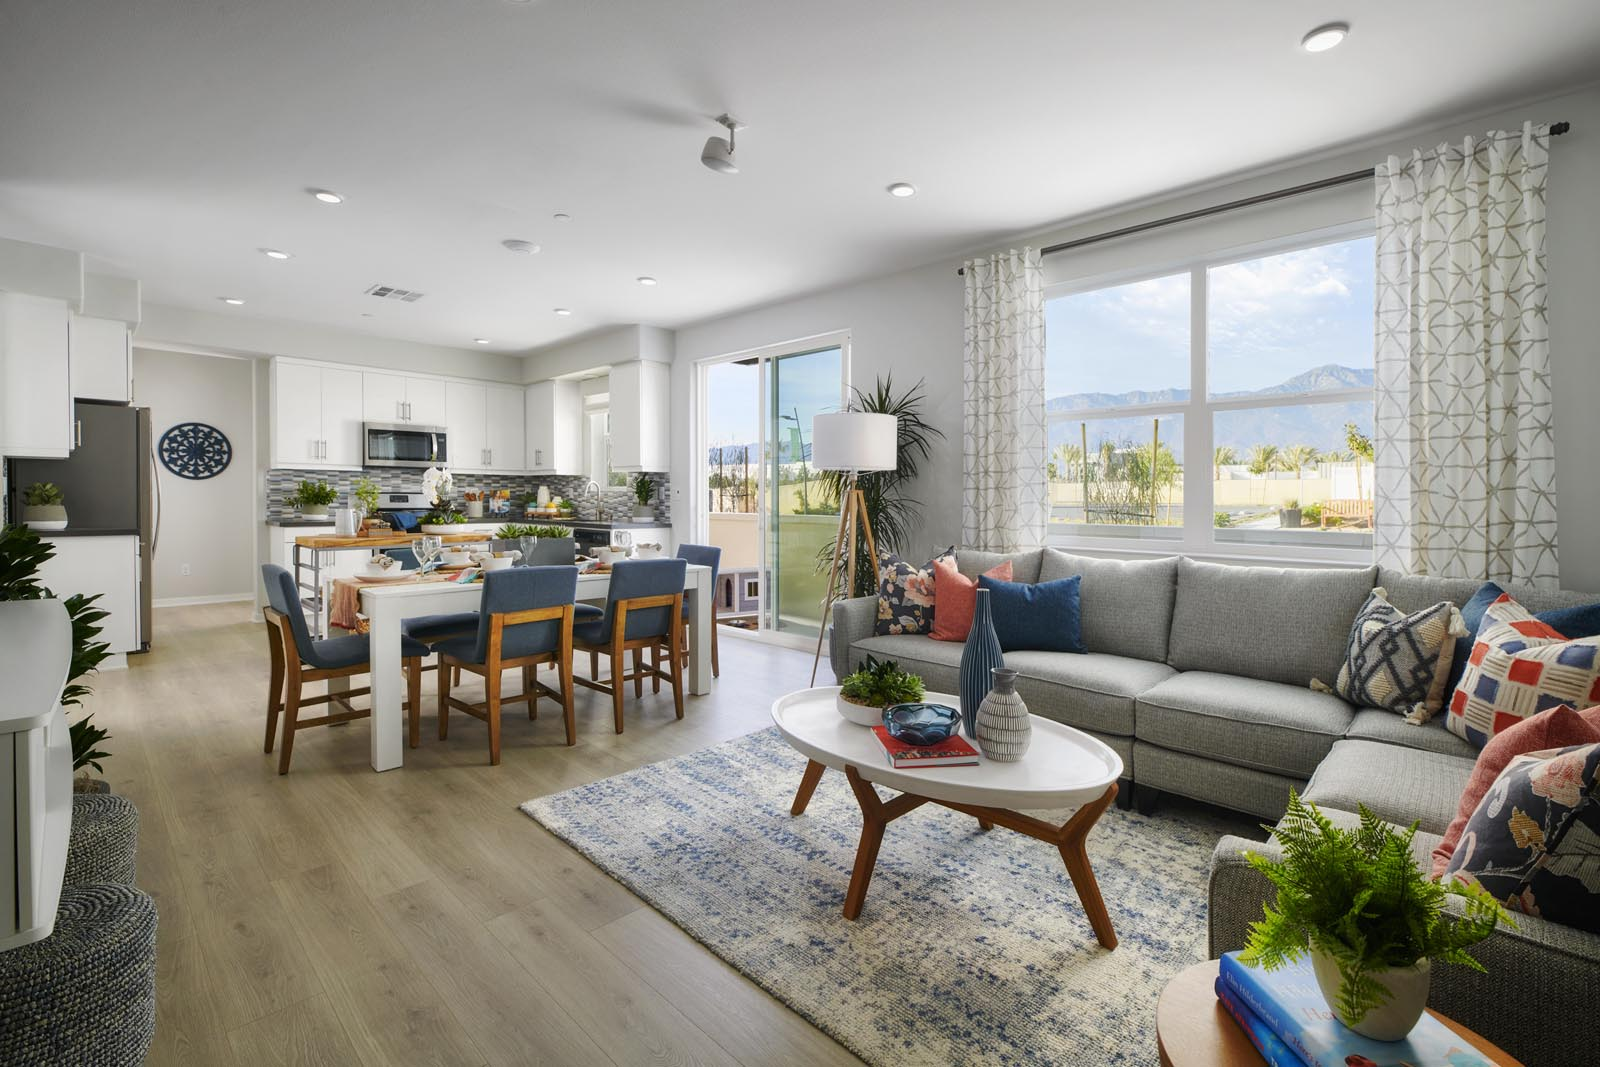 Great Room to Dining Area   Residence 1   Enliven   New Homes in Rancho Cucamonga, CA   Van Daele Homes